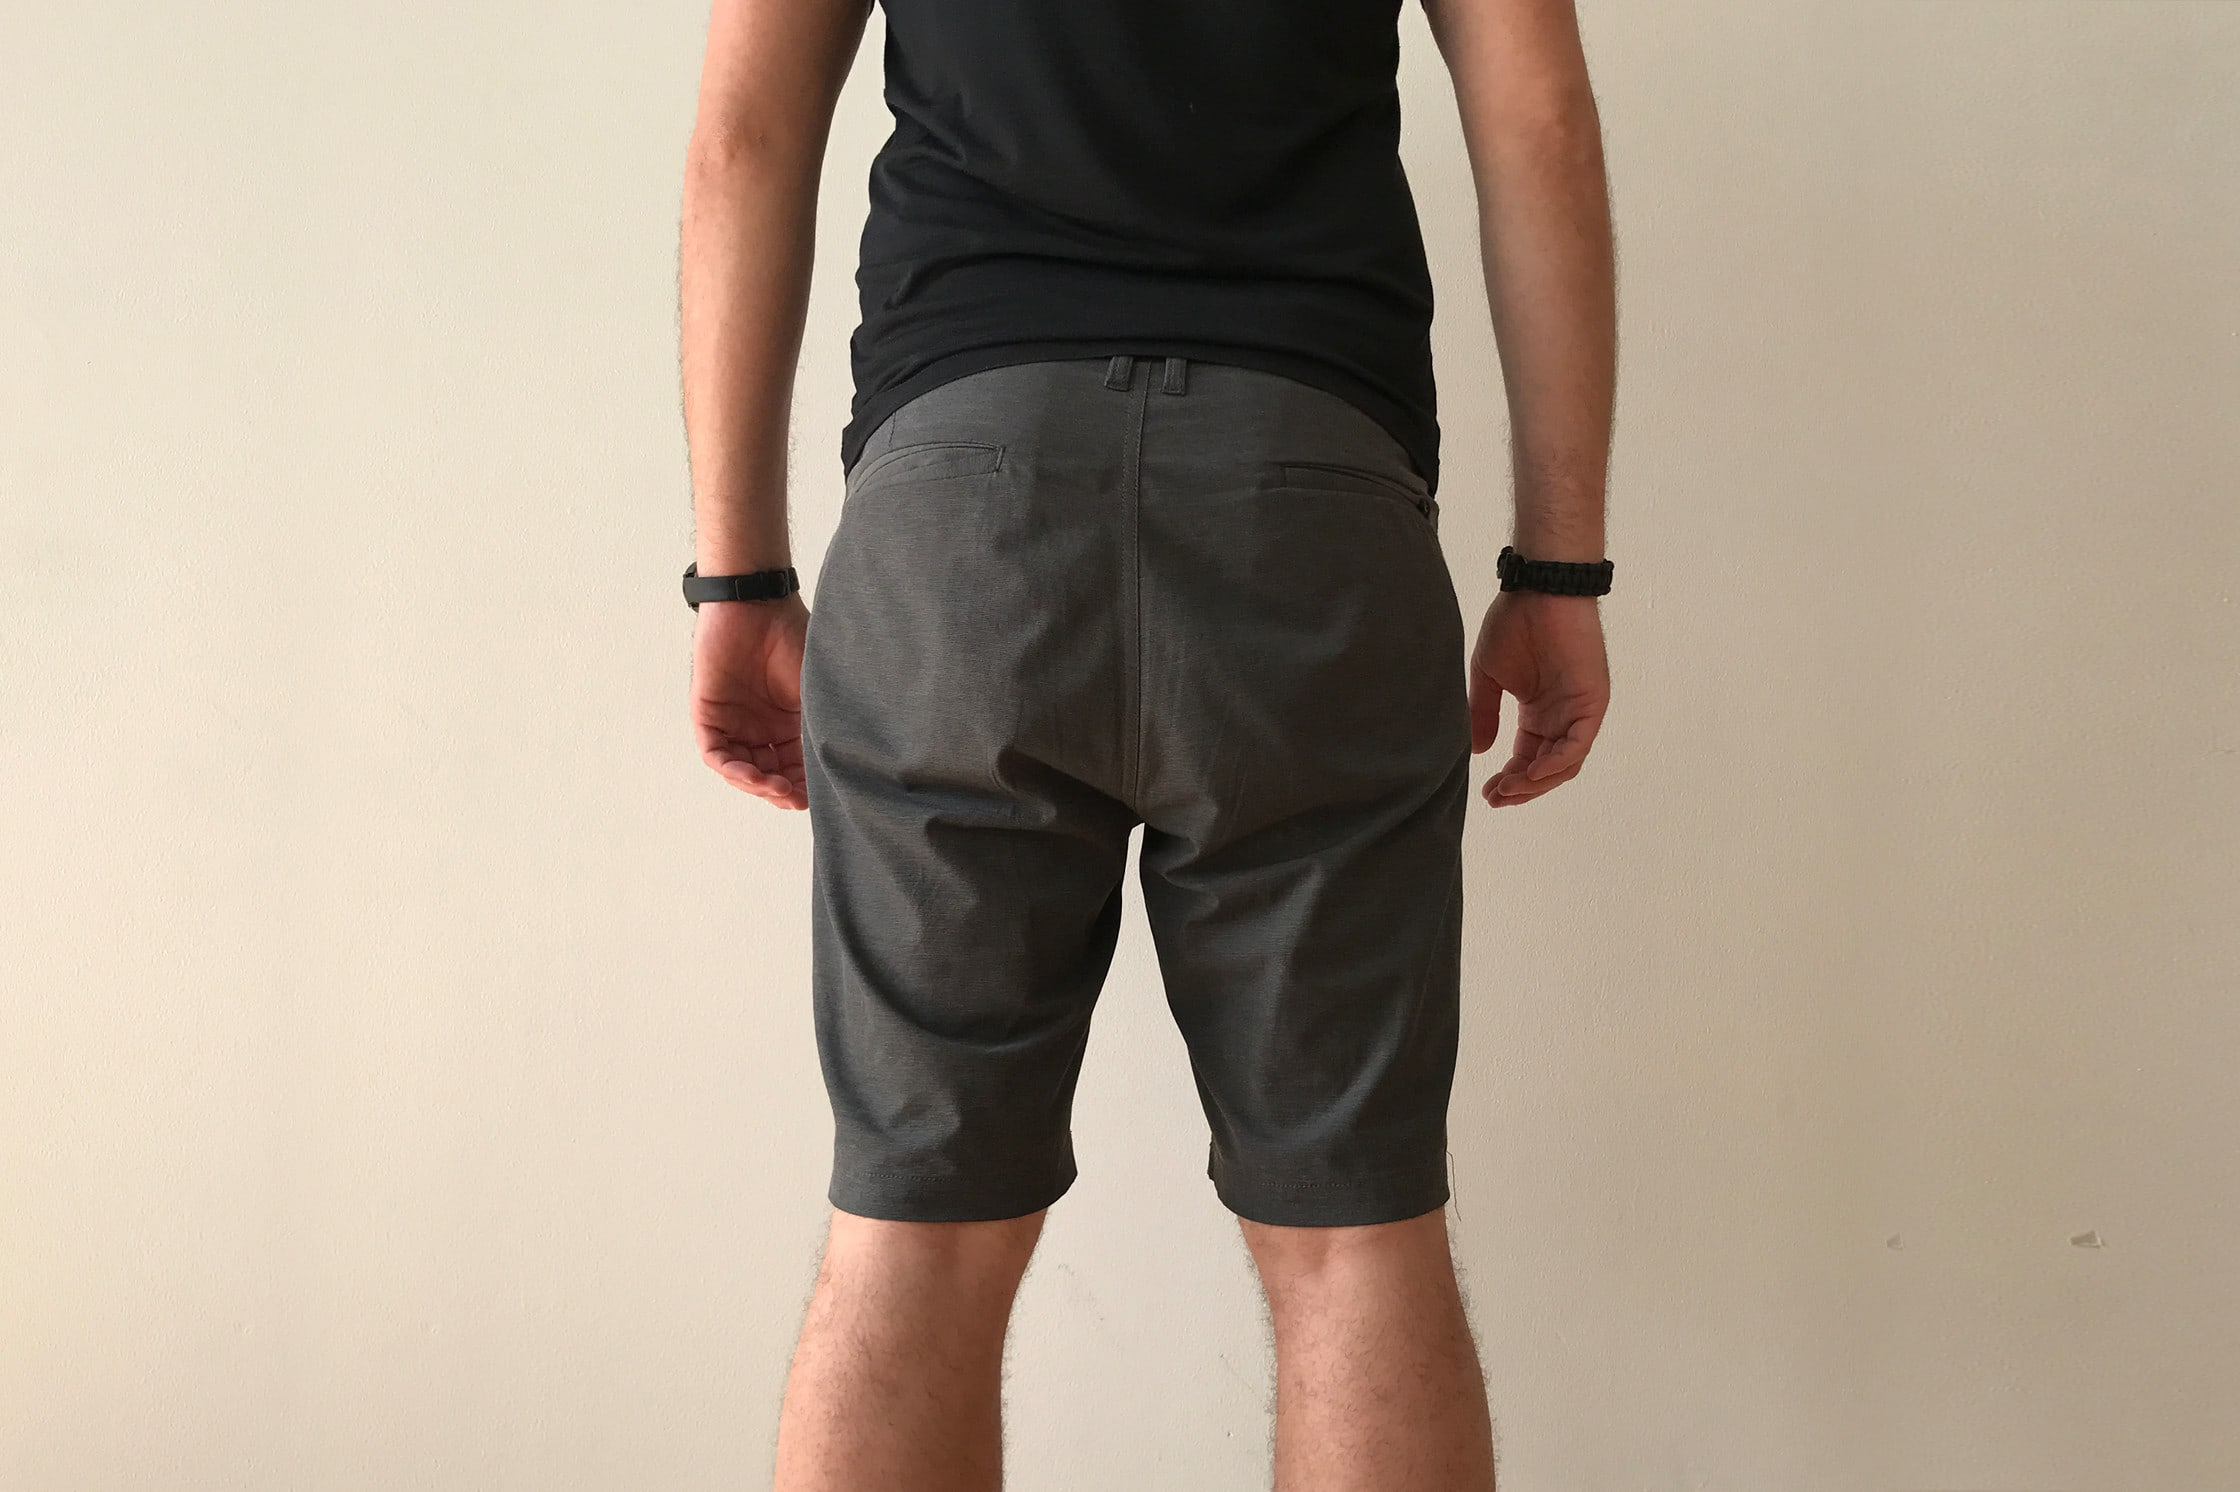 Back of the Billabong Crossfire X Submersible Short